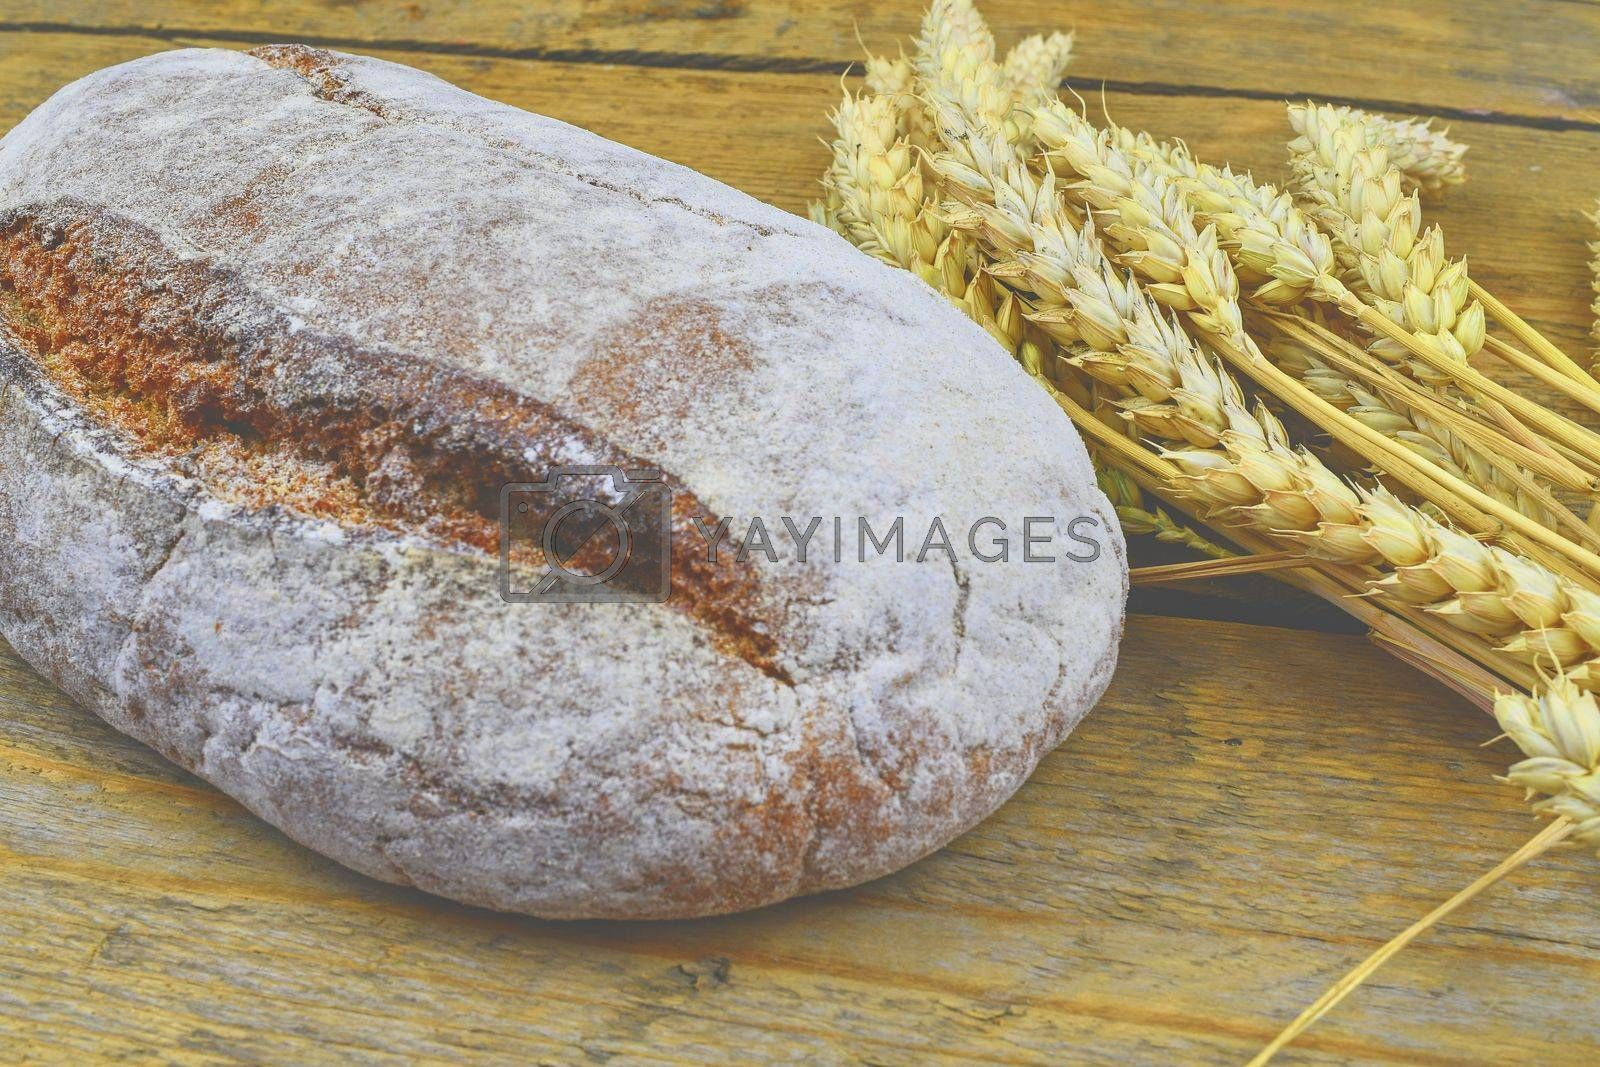 Loaf of bread and ears of grain on wood background. Rustic and rural concept. Close up.